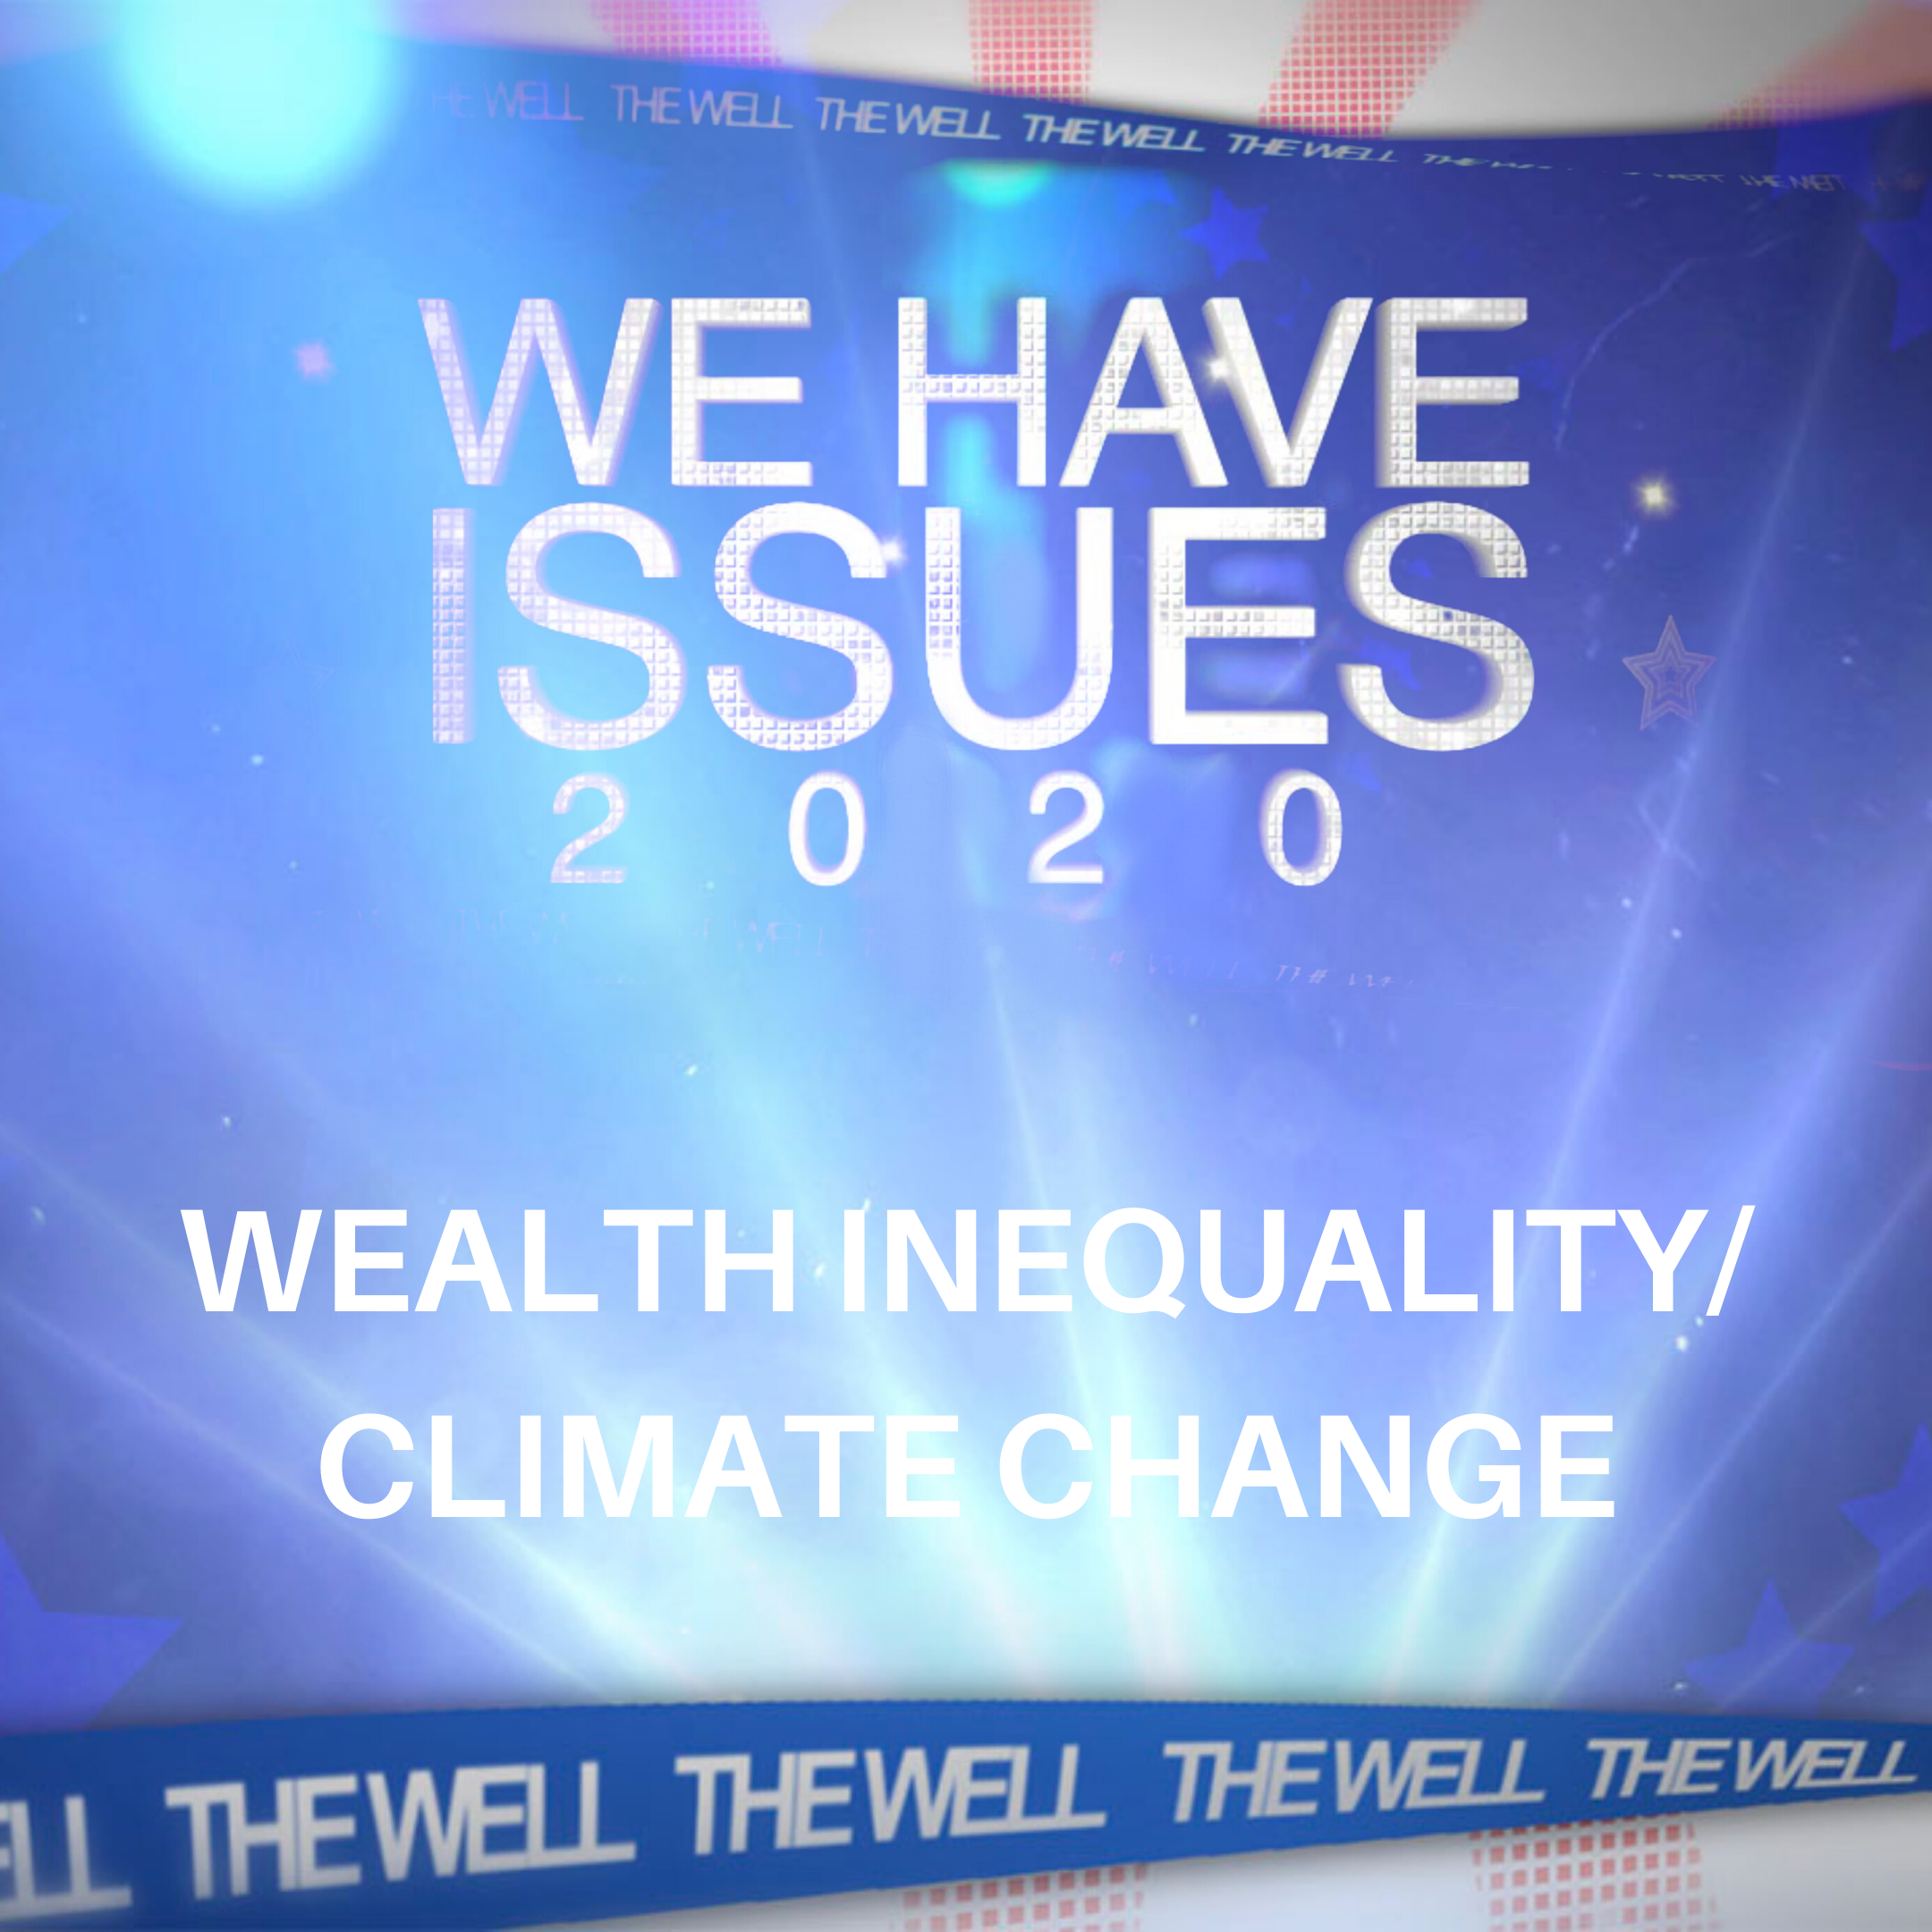 We Have Issues 2020 | Wealth Inequality and Climate Change